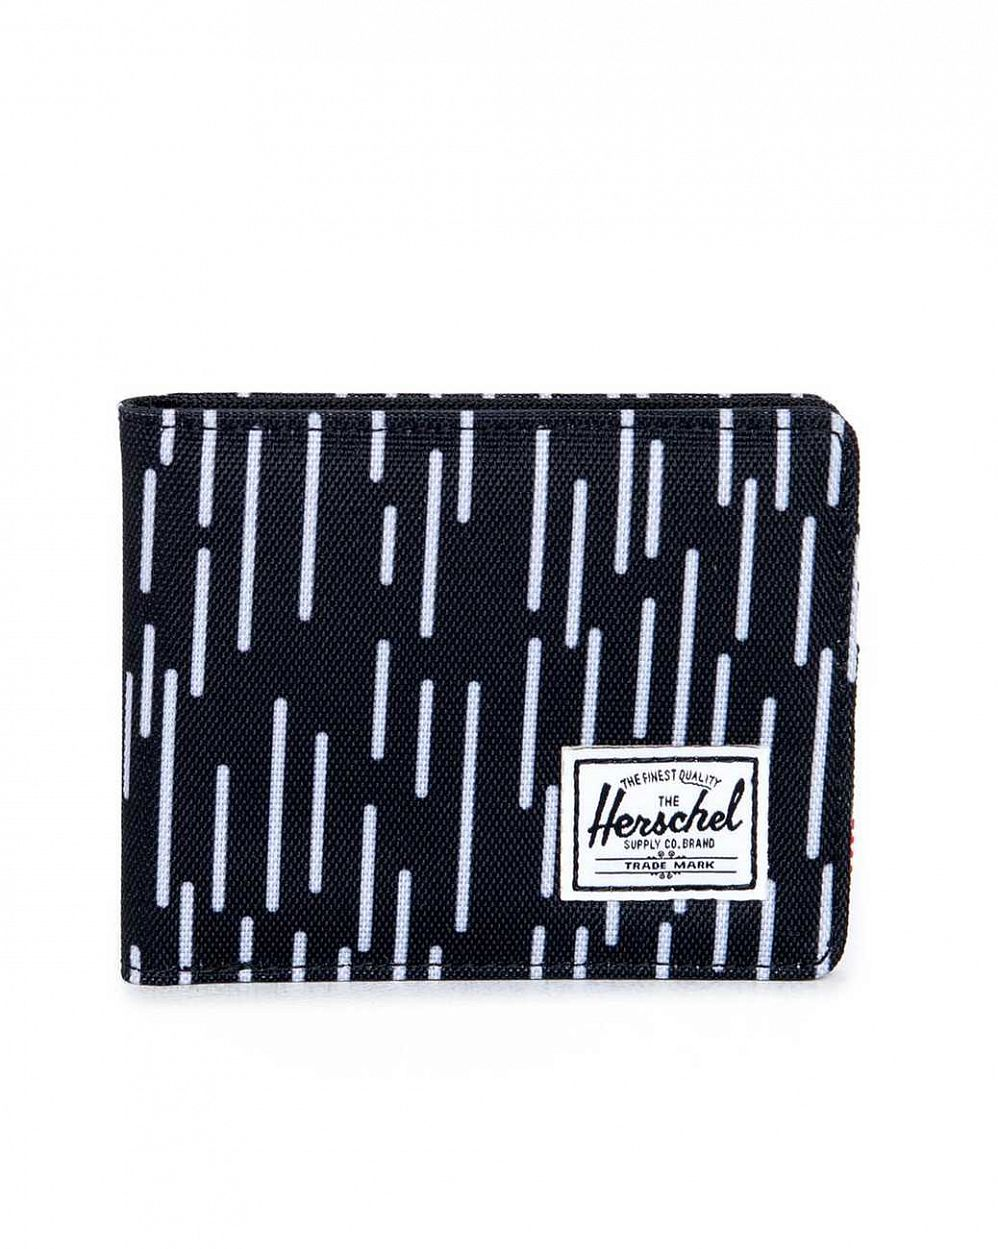 Кошелек Herschel Roy Black White Rain отзывы